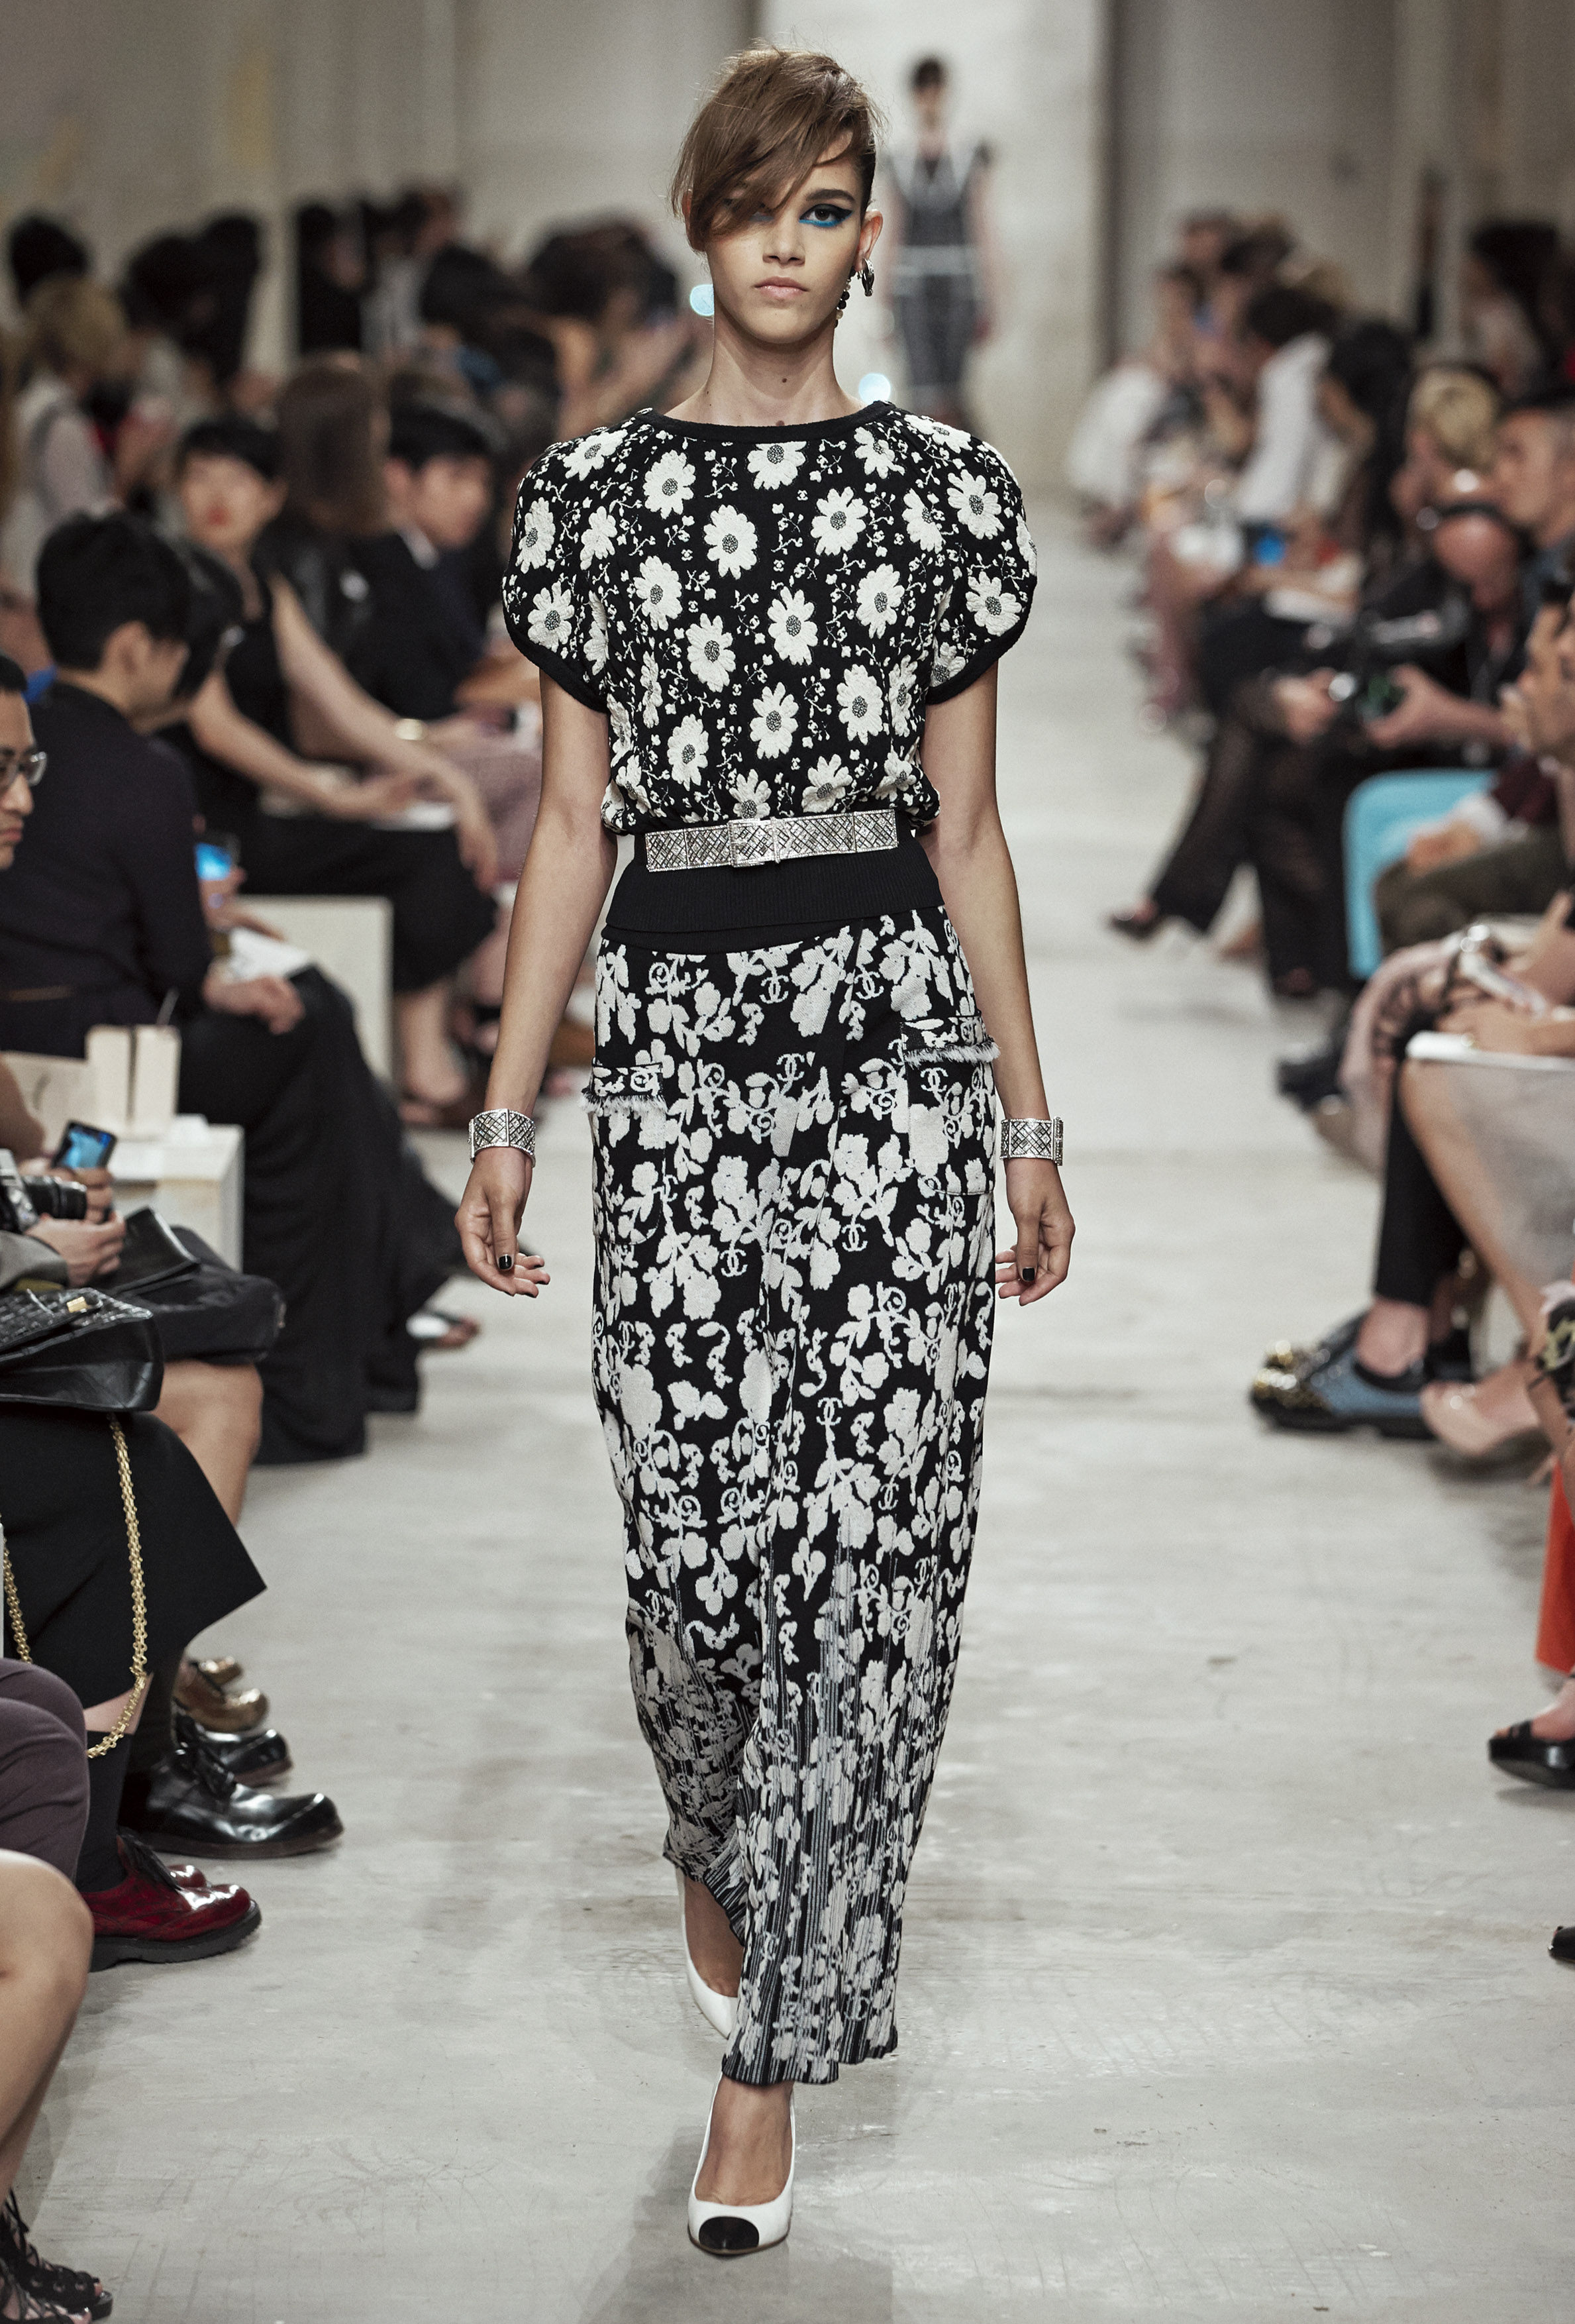 A Collection Of The Most: CHANEL CRUISE 2015/2016